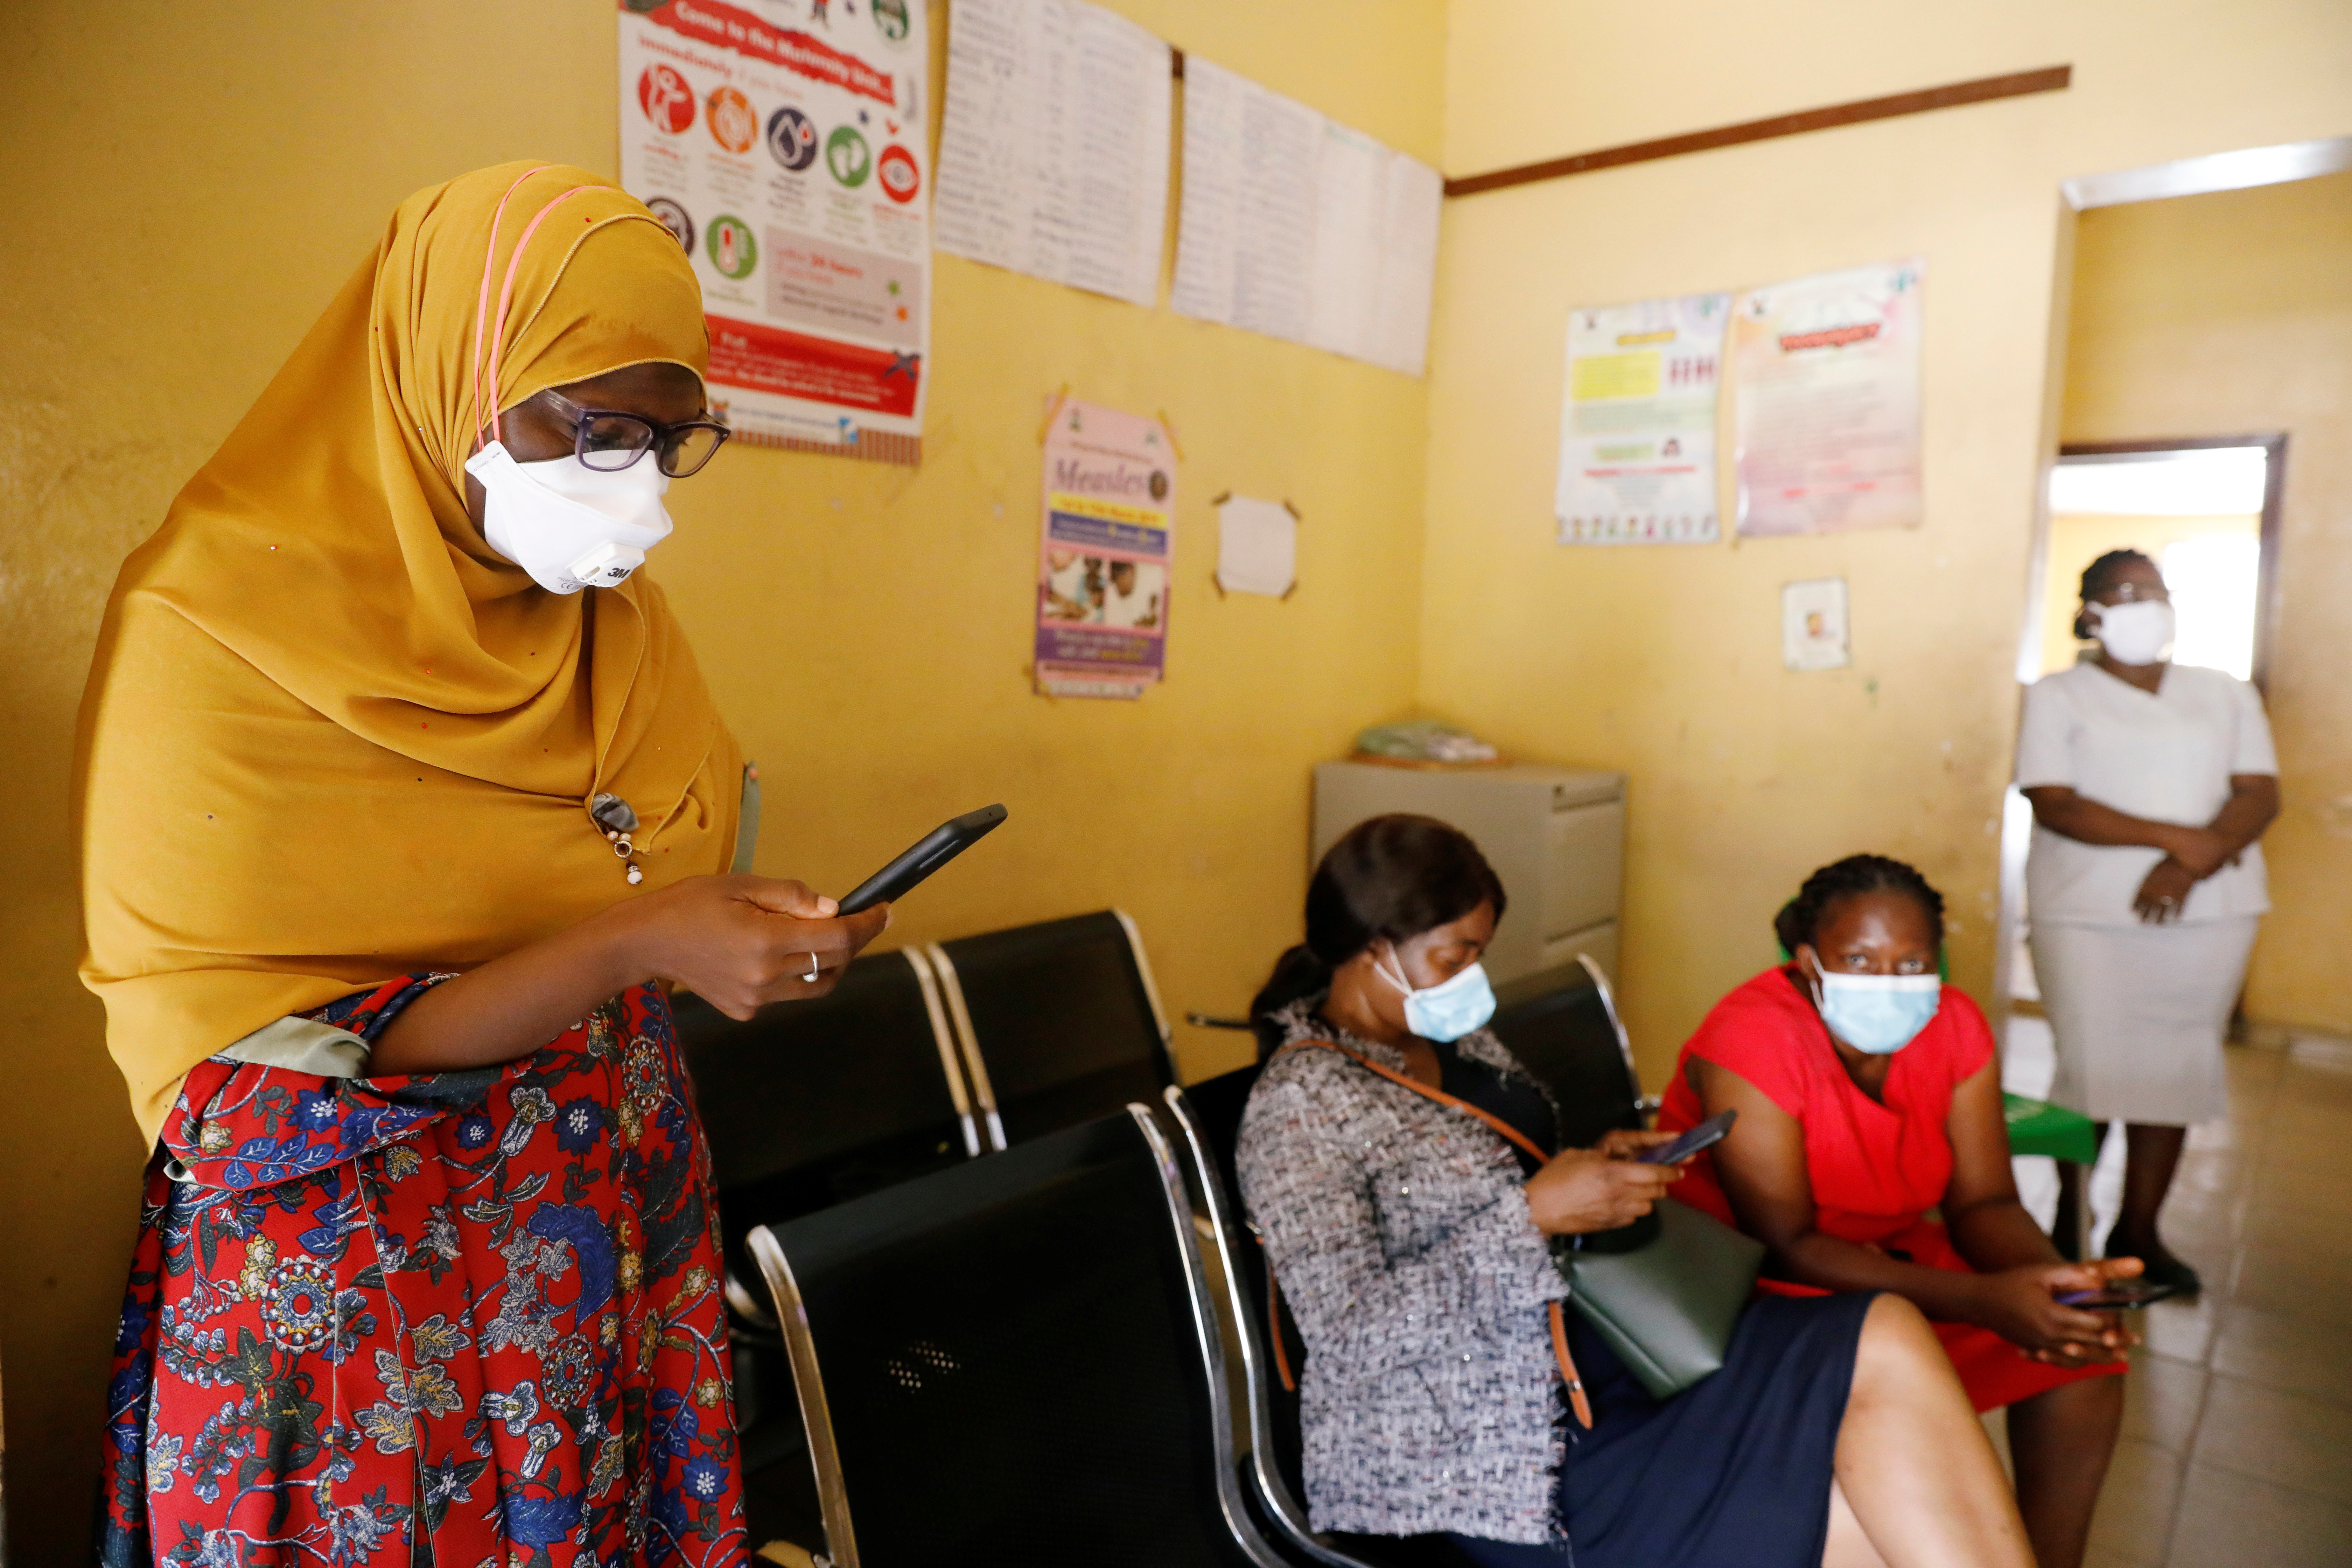 Members of the contact-tracing team are seen at the Primary Healthcare Centre, amid the spread of the coronavirus disease (COVID-19) in Lagos, Nigeria May 7, 2020. Picture taken May 7, 2020. REUTERS/Temilade Adelaja - RC2XSH9QVVAS